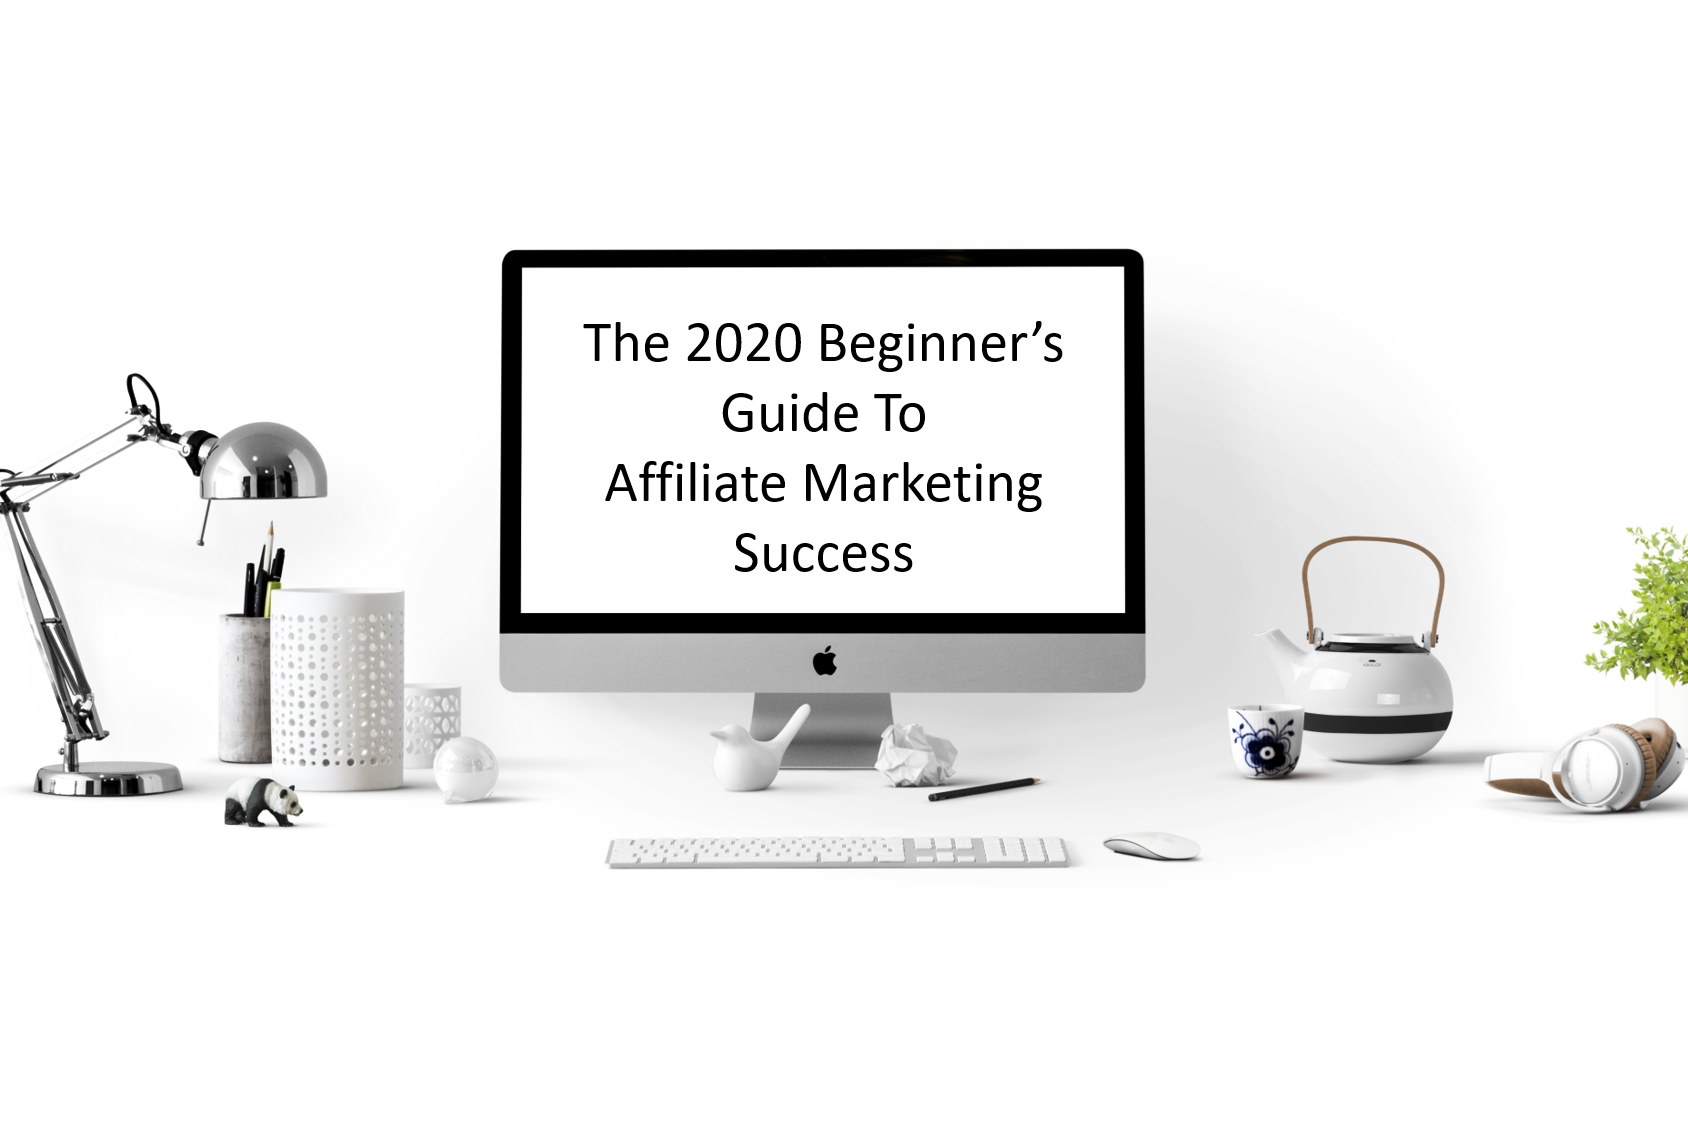 The 2020 Beginners Guide To Affiliate Marketing Success